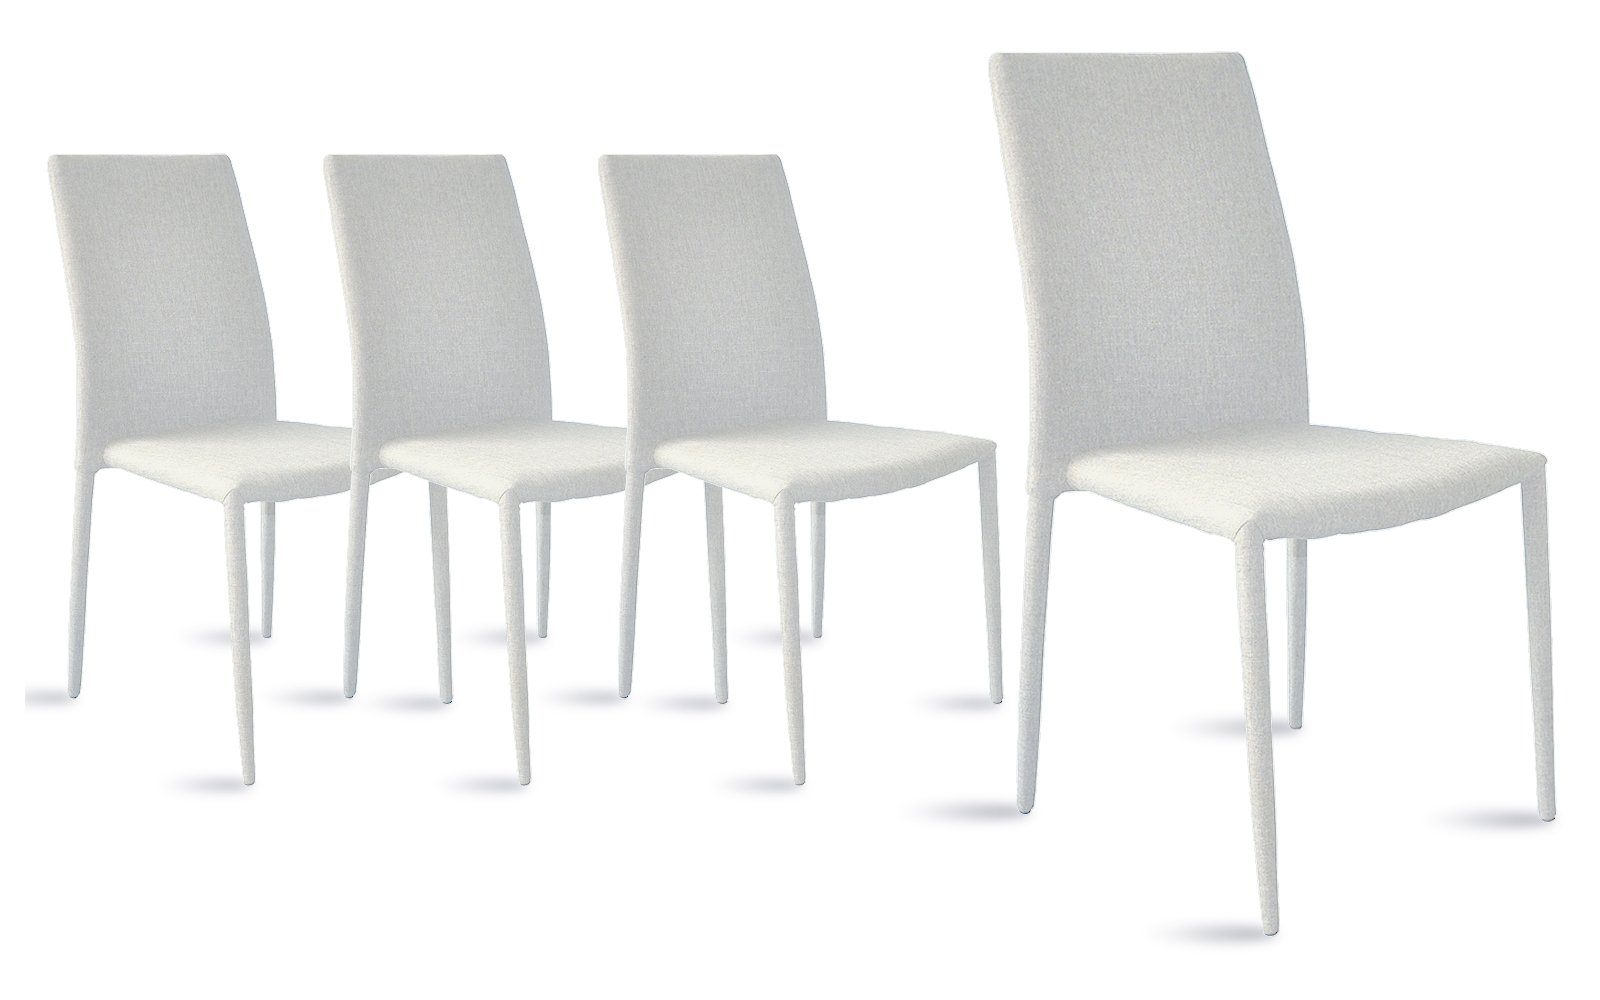 Dining Room Chairs Set of 4, Fabric Chair for Living Room 4 Pieces (White)